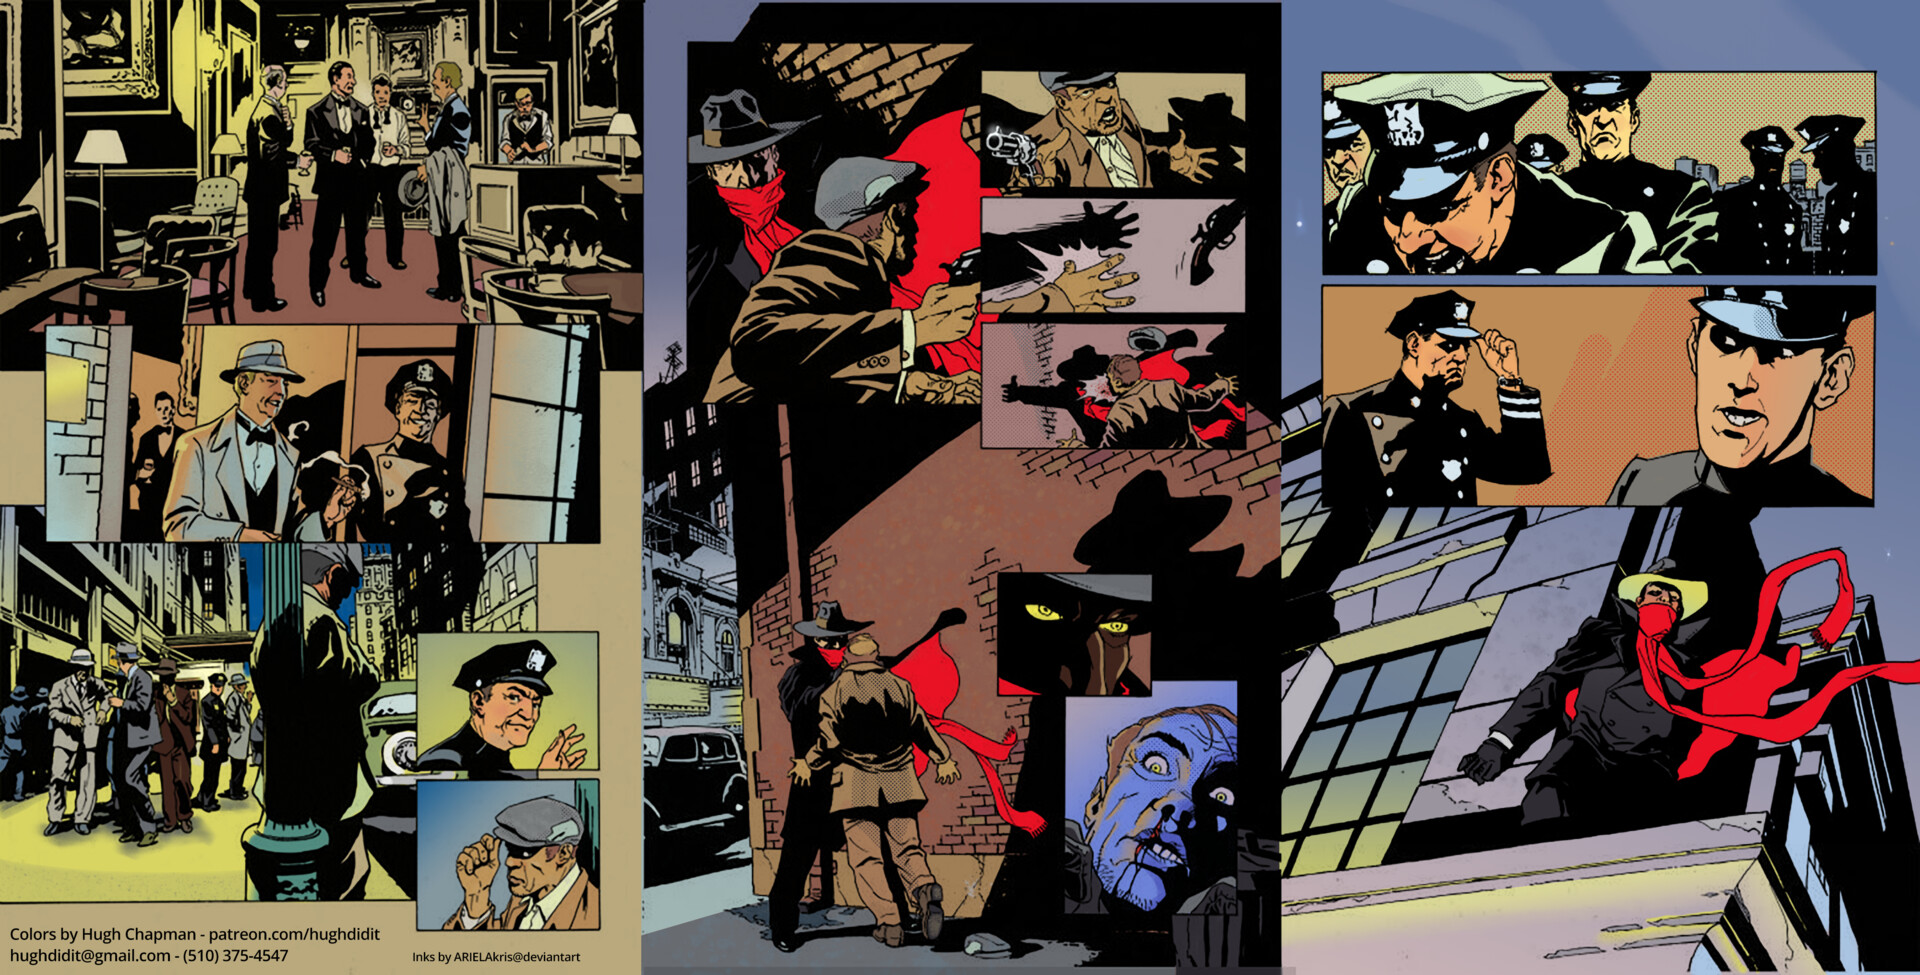 """Sequential Comic Book Pages """"The Shadow"""" Ink by stevescott Colors by me  Hugh Chapman hughdidit@gmail.com (510) 497-1957"""